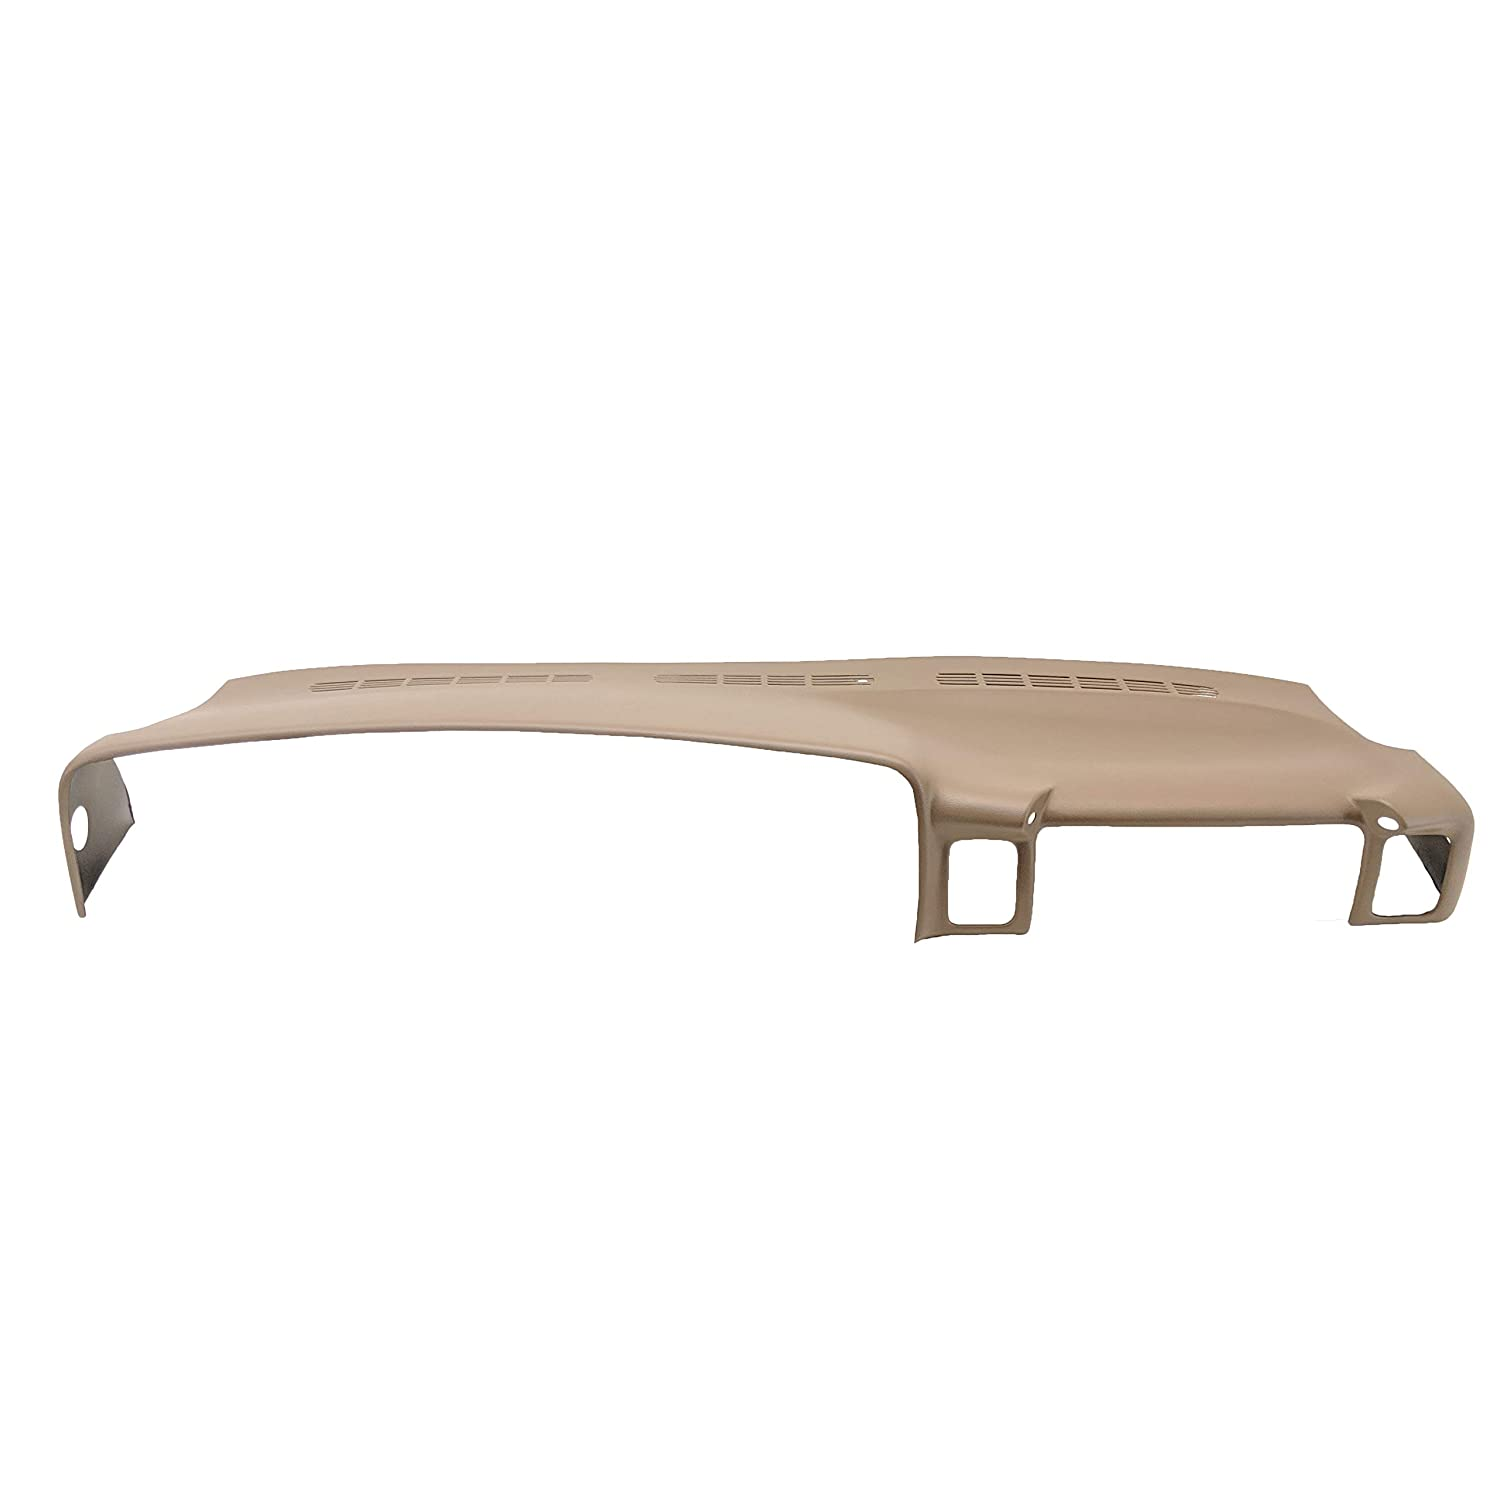 DashSkin Molded Dash Cover Compatible with 00-06 GM SUVs and 99-06 Pickups in Medium Neutral Tan